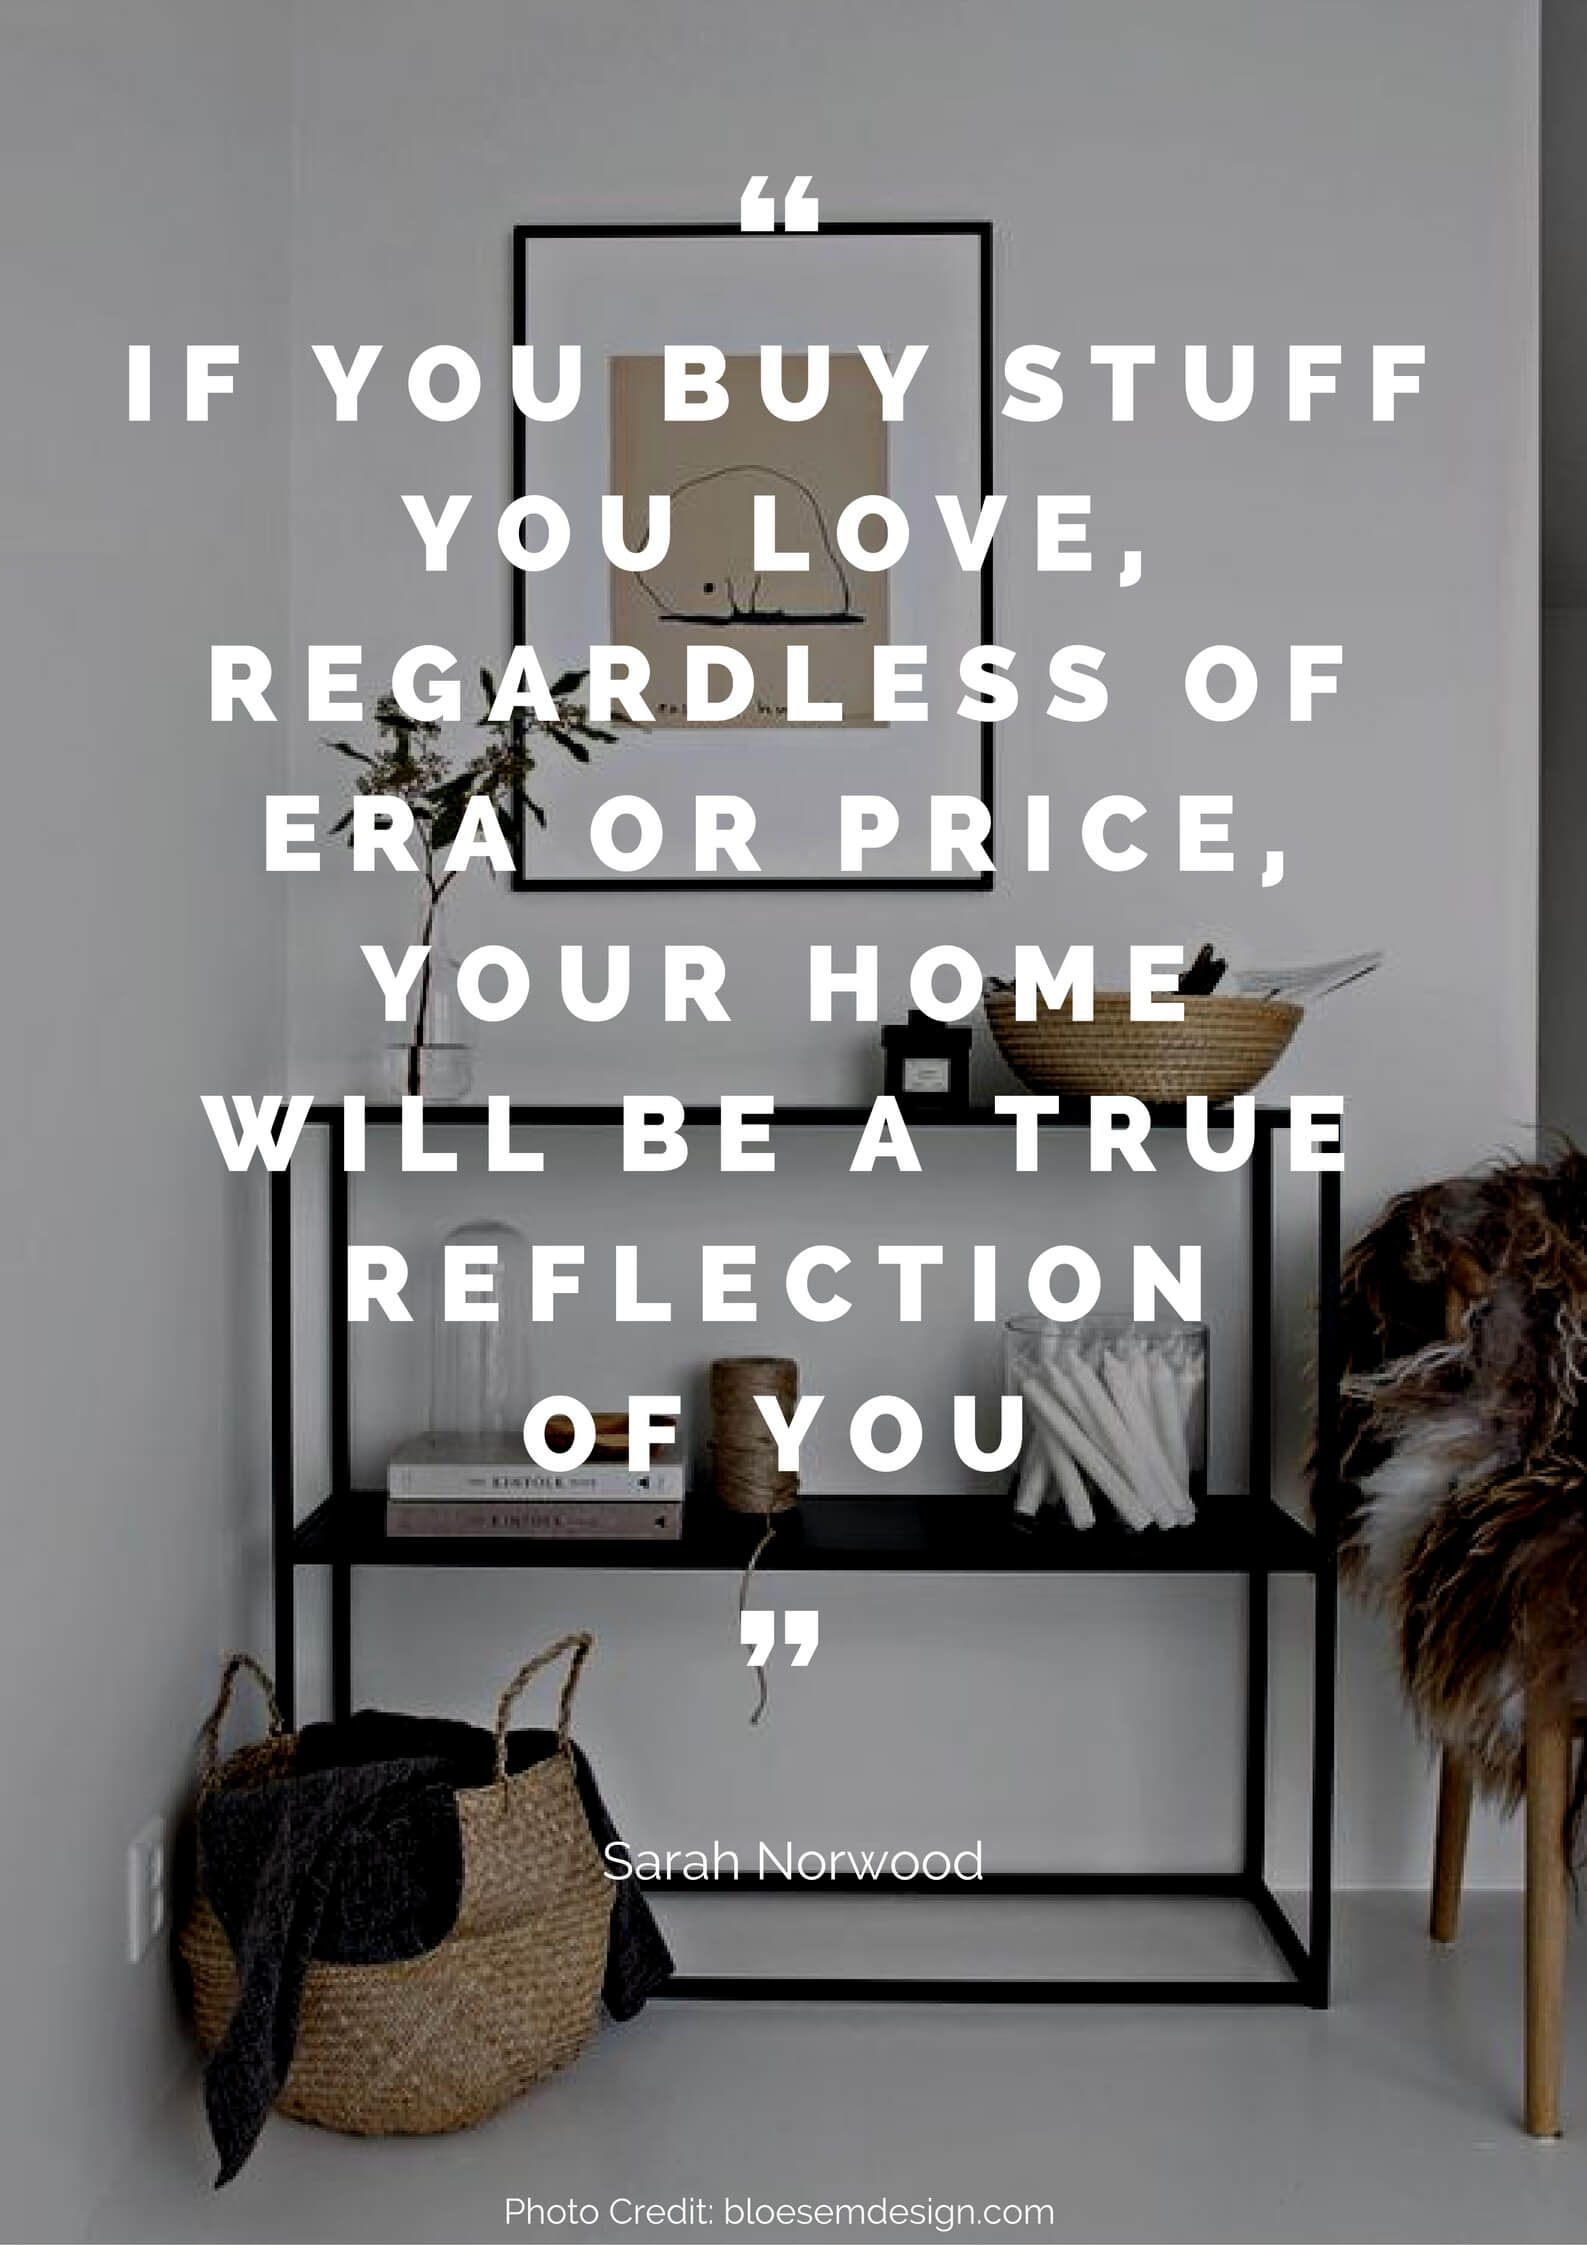 21 Beautiful Quotes About Home   Home quotes and sayings, Interior ...